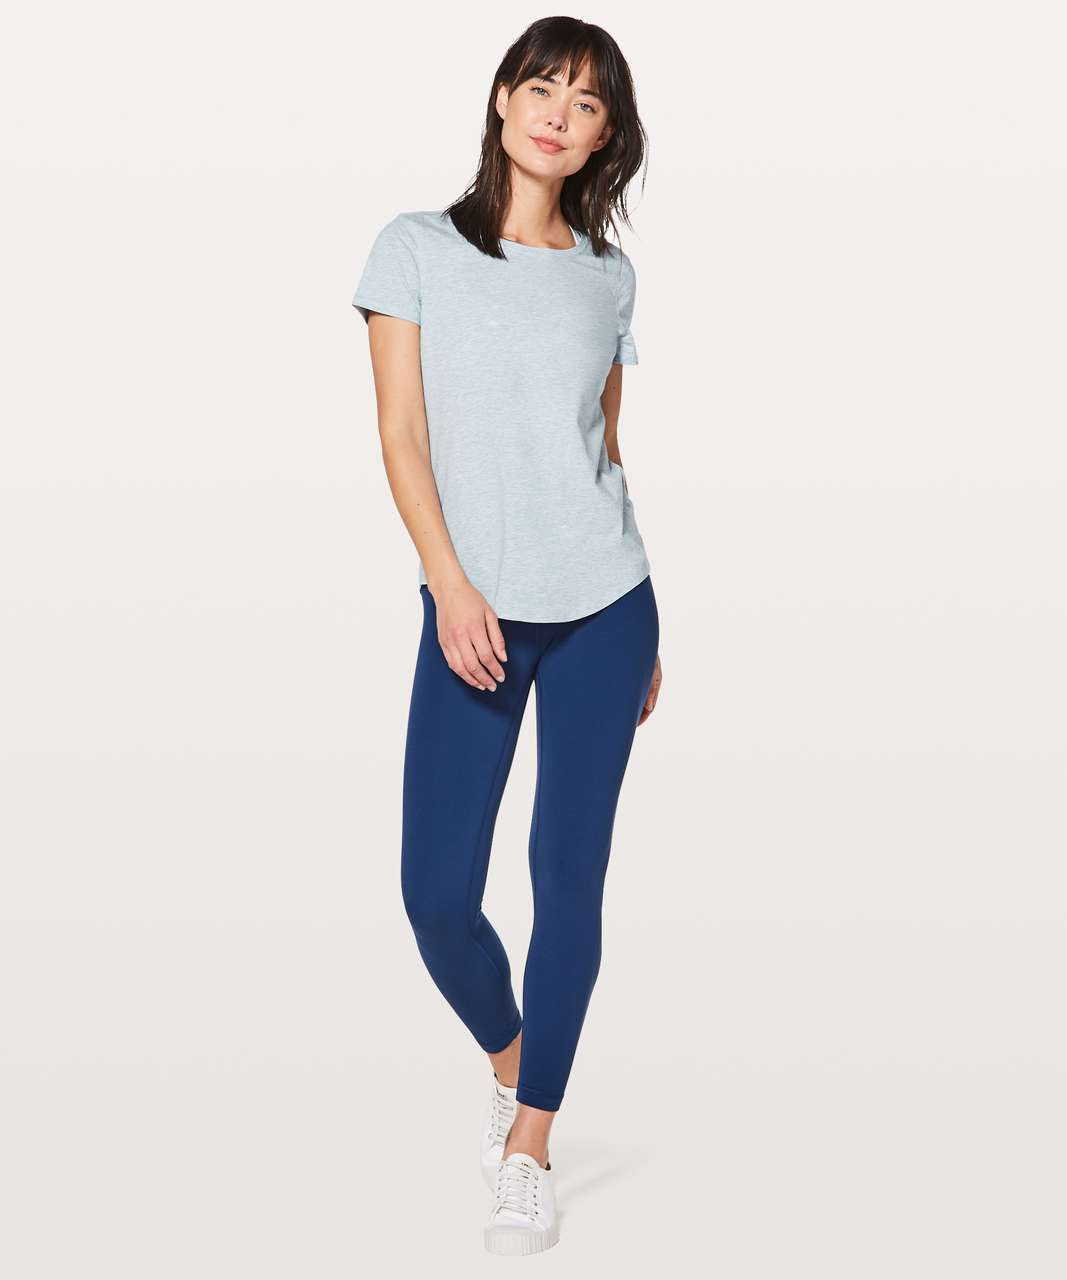 Lululemon Love Crew III - Heathered Starlight